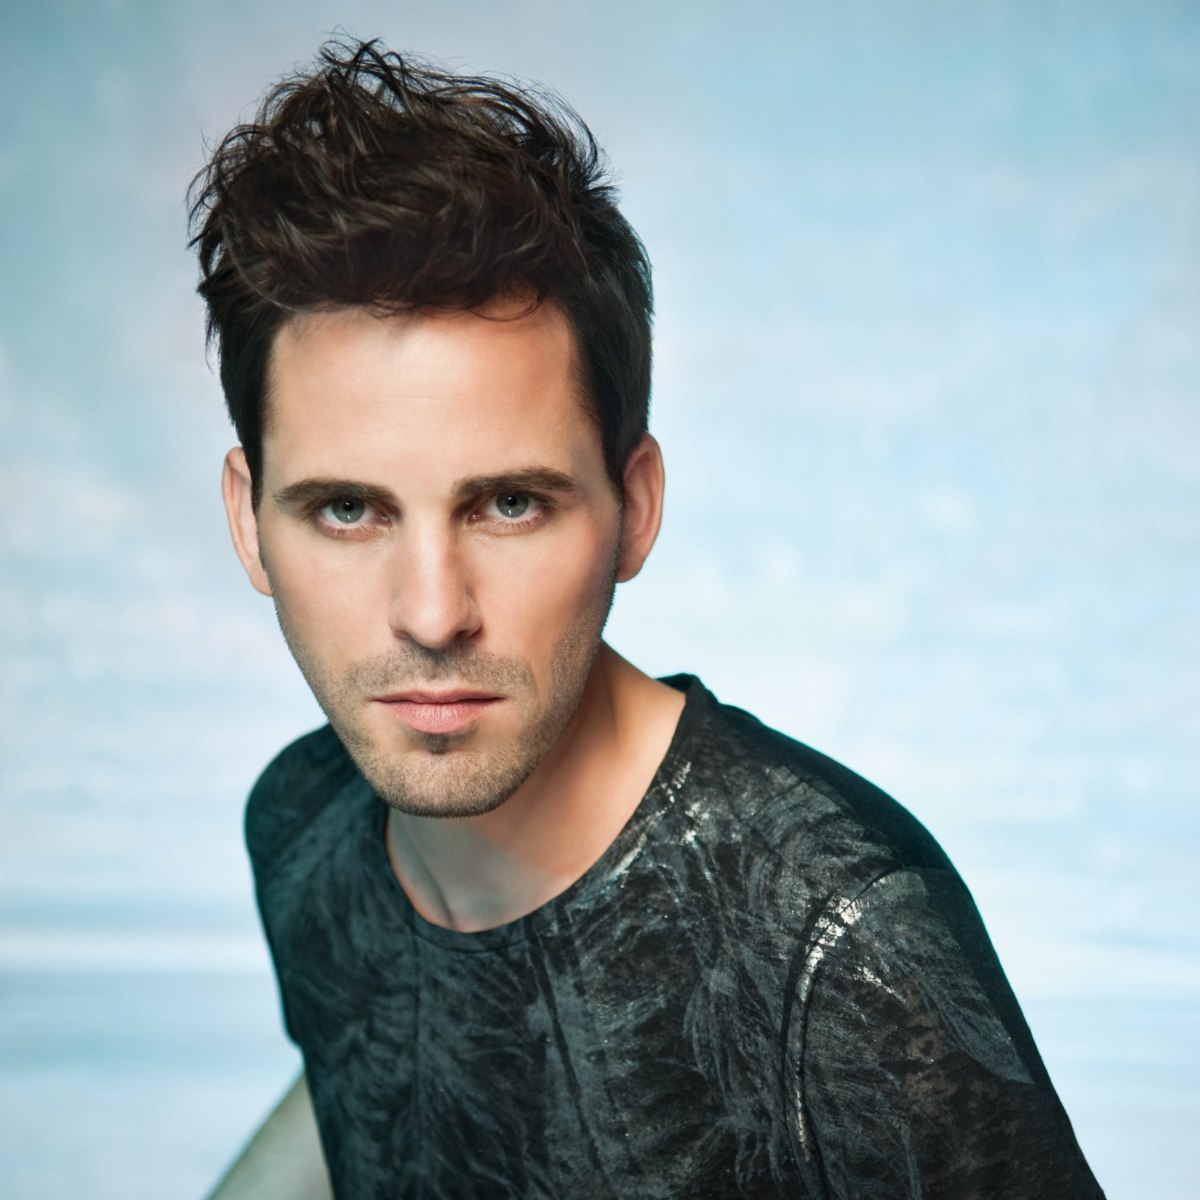 Men's Hairstyle With A Puffy Kneaded Quiff